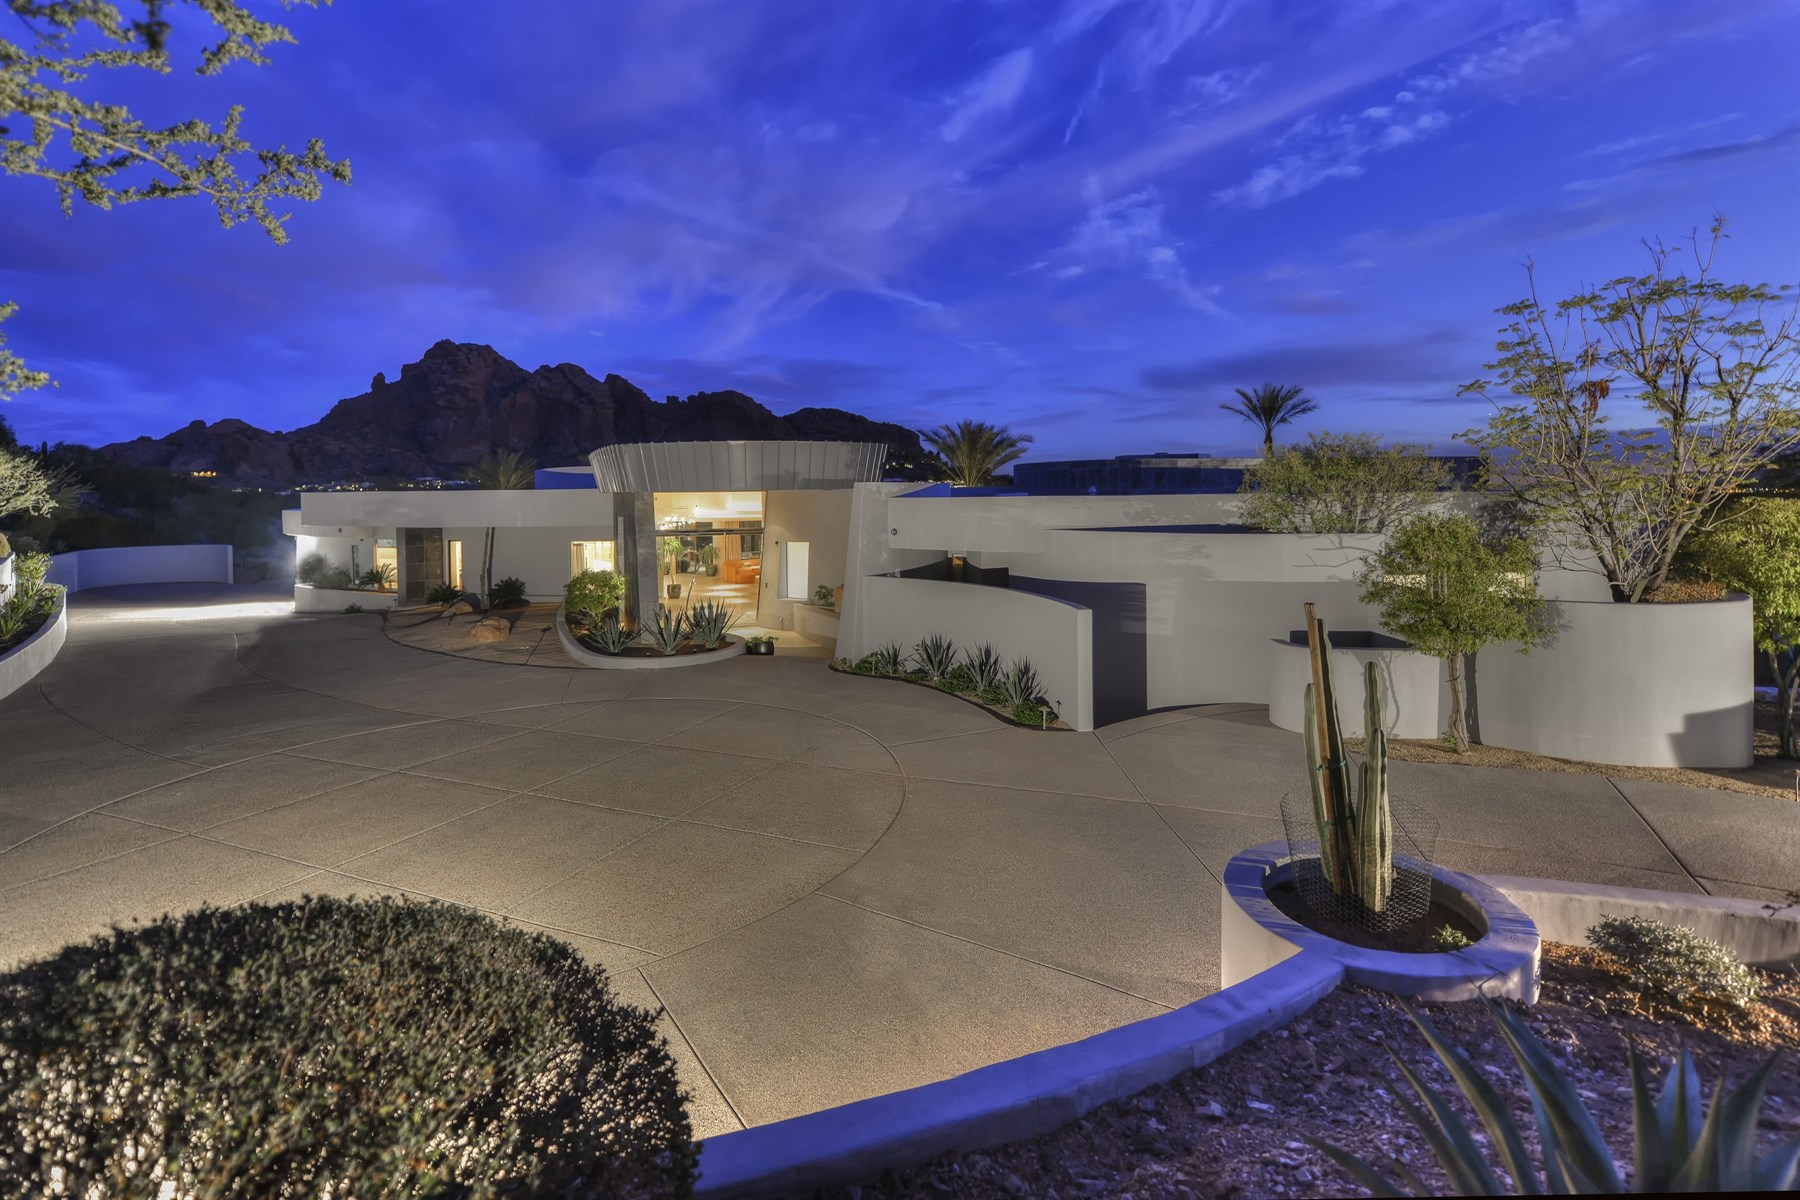 Maison unifamiliale pour l Vente à Breathtaking Custom Contemporary Includes Holistic Views Of The Praying Monk 6021 N 44th Street Paradise Valley, Arizona 85253 États-Unis